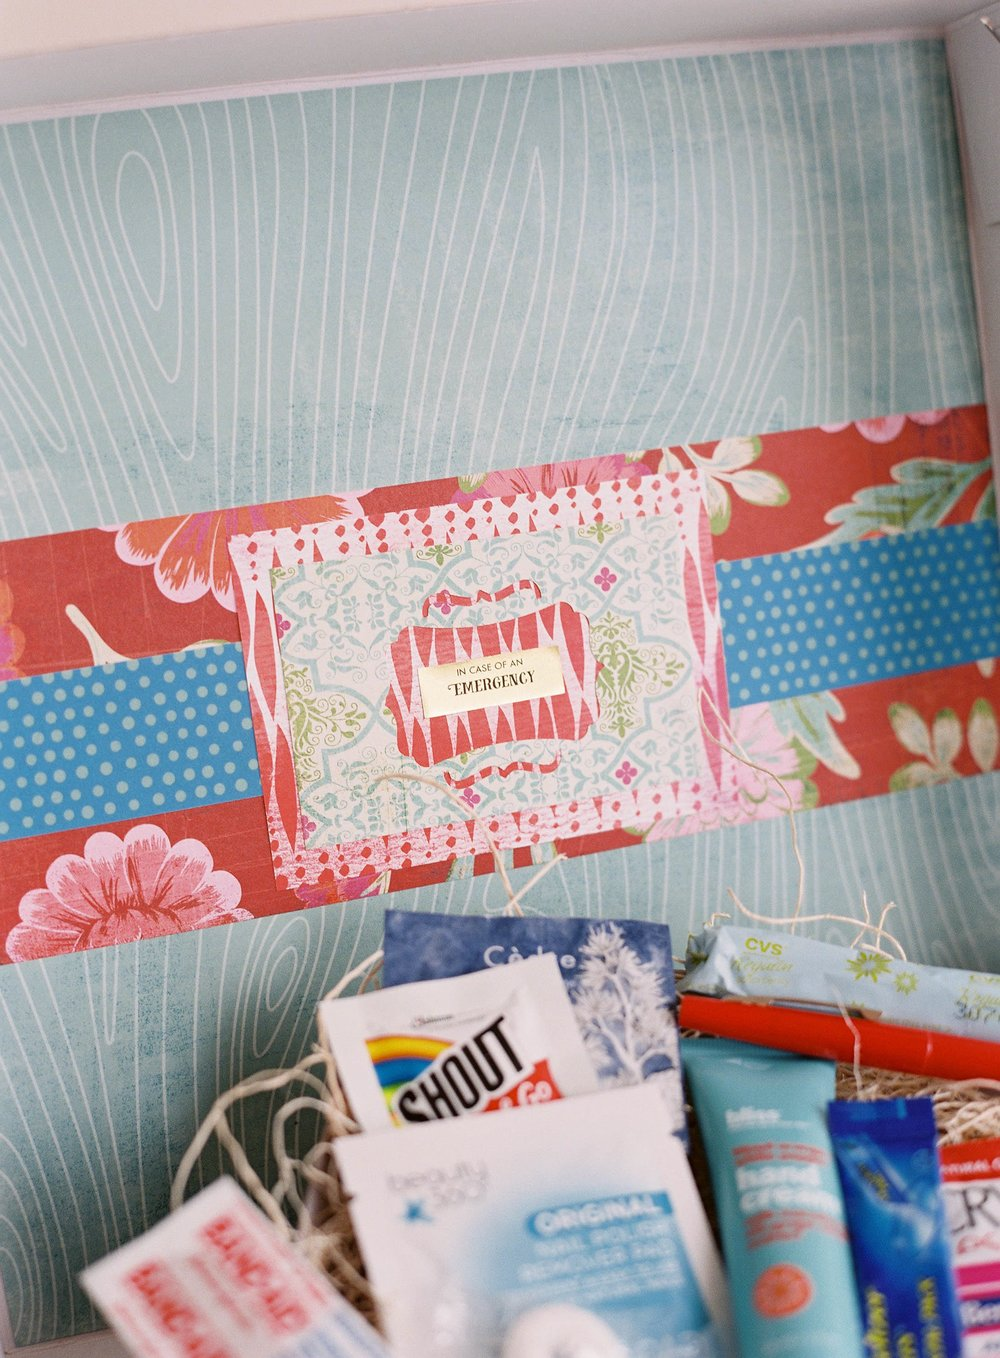 In Case of Emergency Bridal Suite Gift Box by Gilded Gifts photo 4.jpg